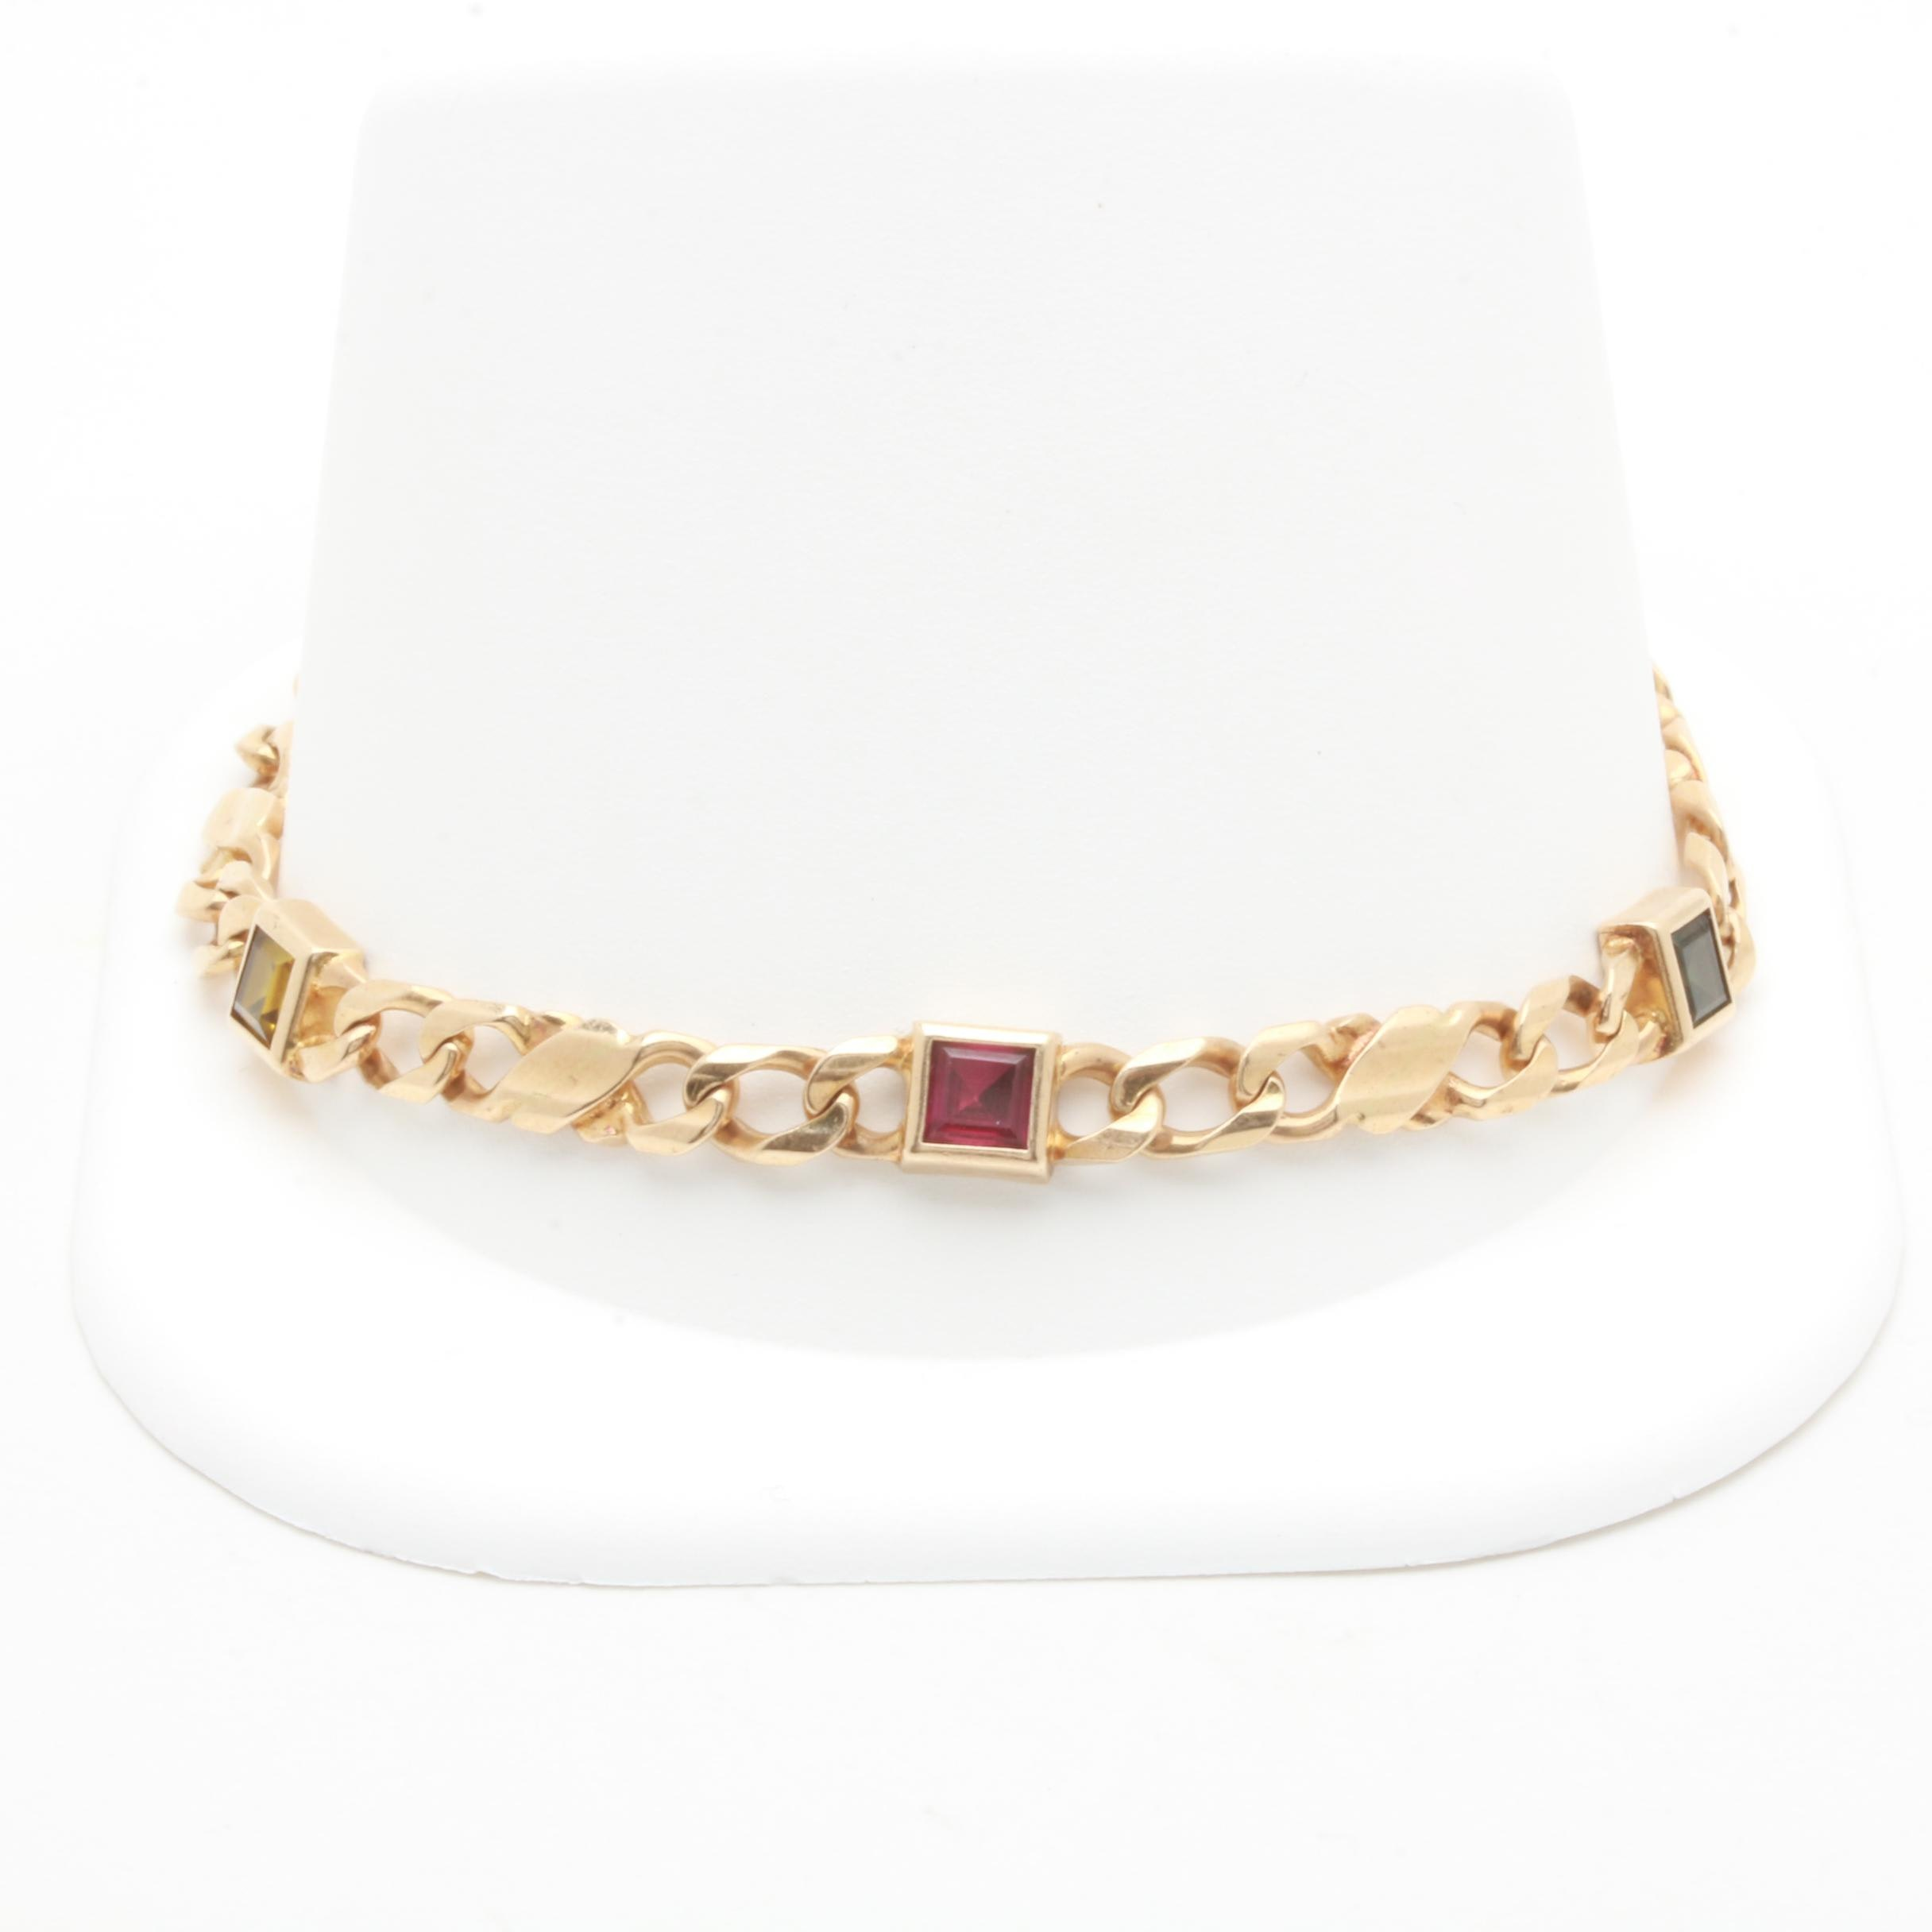 14K Yellow Gold Synthetic Sapphire, Synthetic Spinel and Synthetic Ruby Bracelet